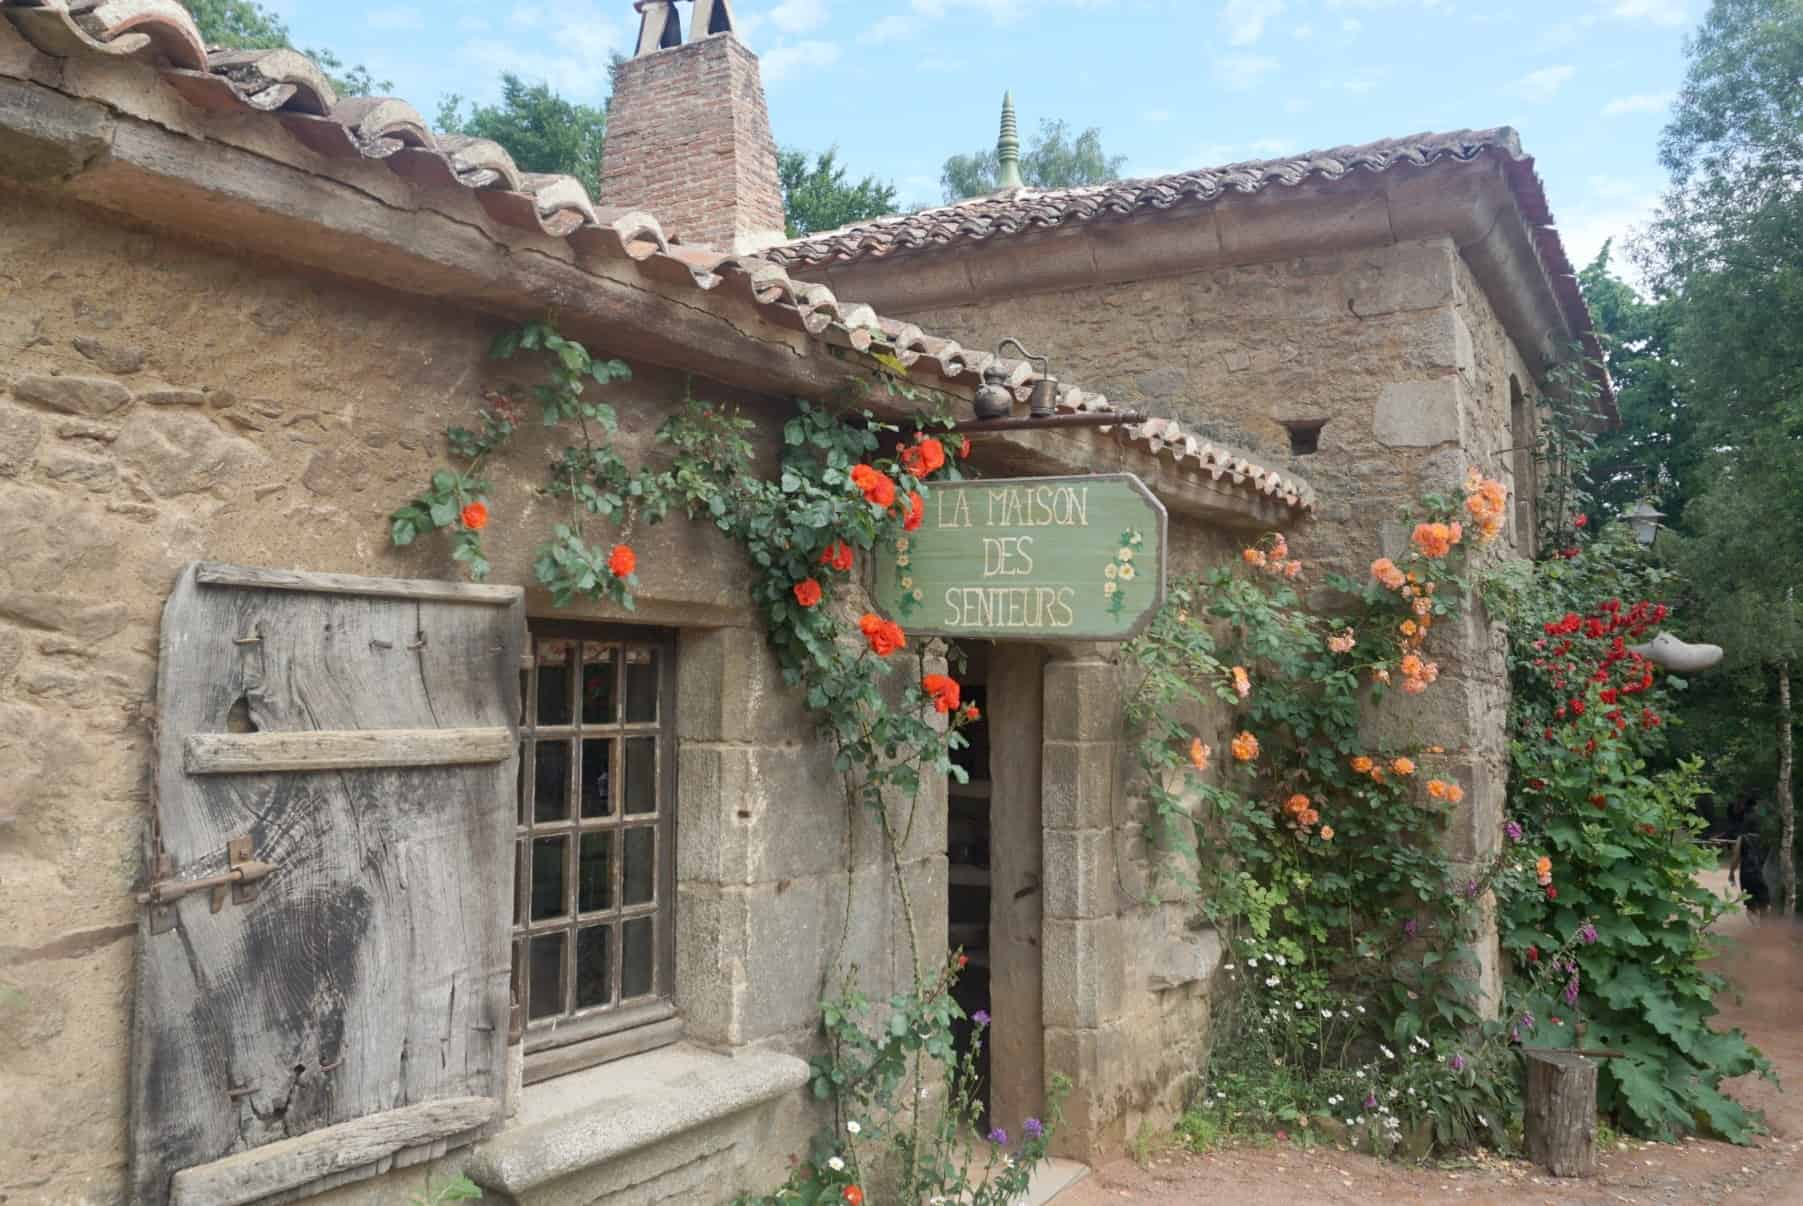 What to do at Puy Du Fou with kids